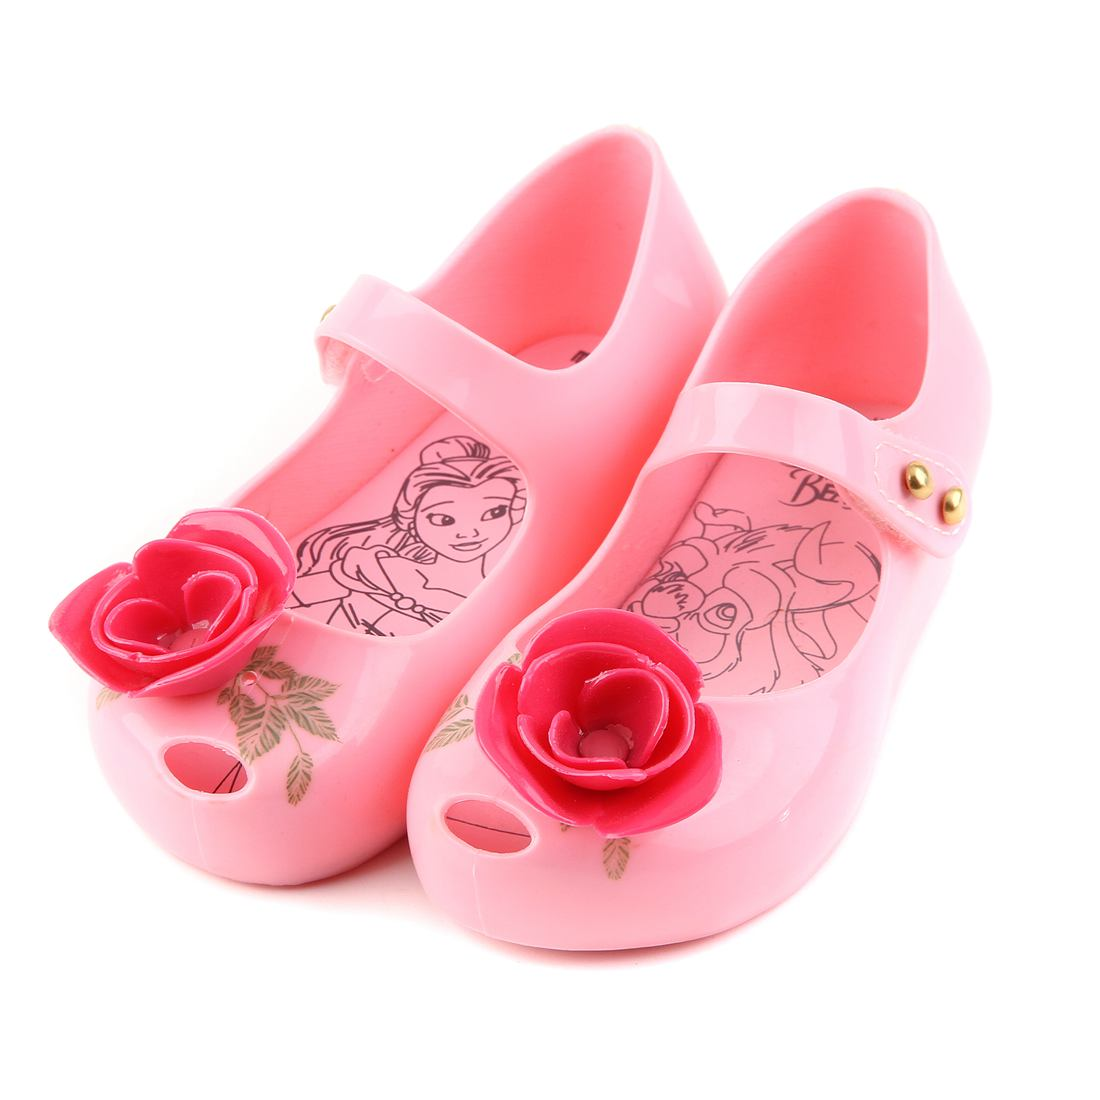 Melissa Kids Sandals Mini Rose with Green Leaves Printed 2018 Girl Shoe New Beauty Beast Jelly Princess Rain Shoes Soft Plastic